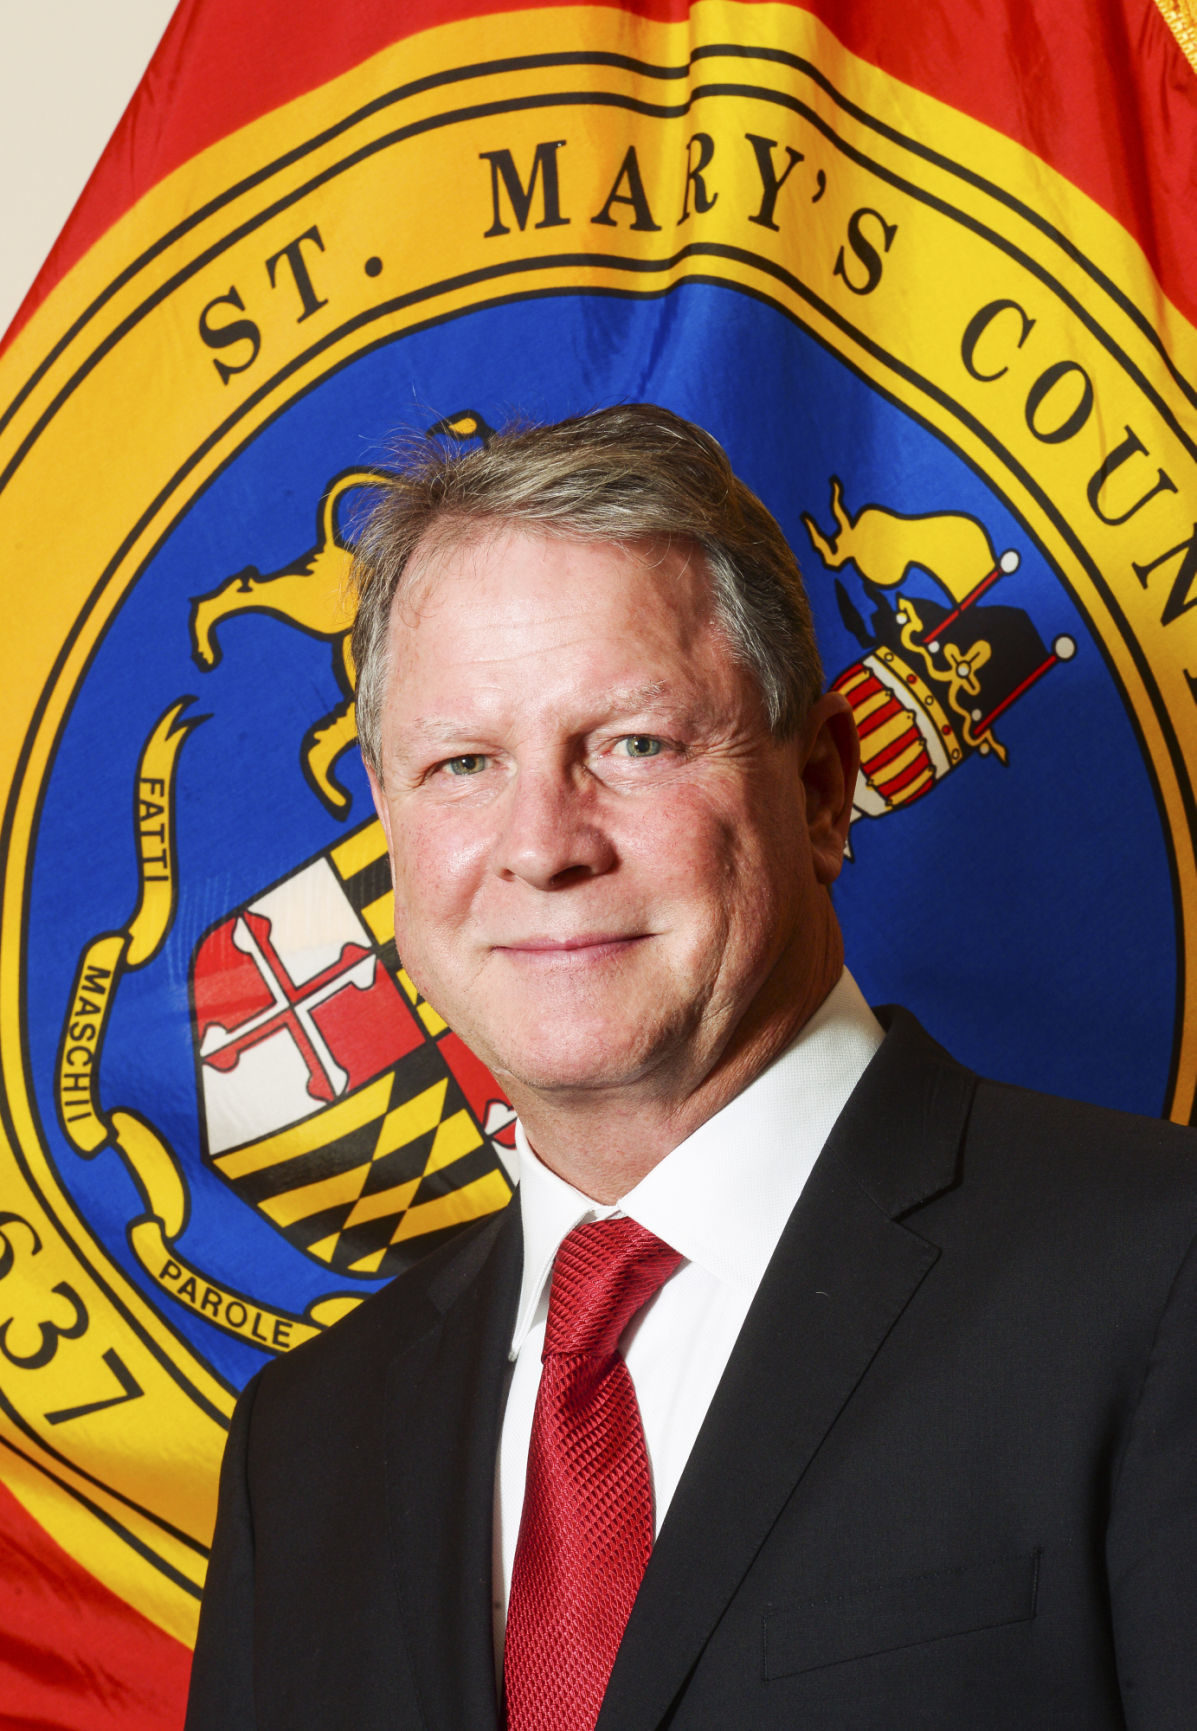 Commissioner Mike Hewitt